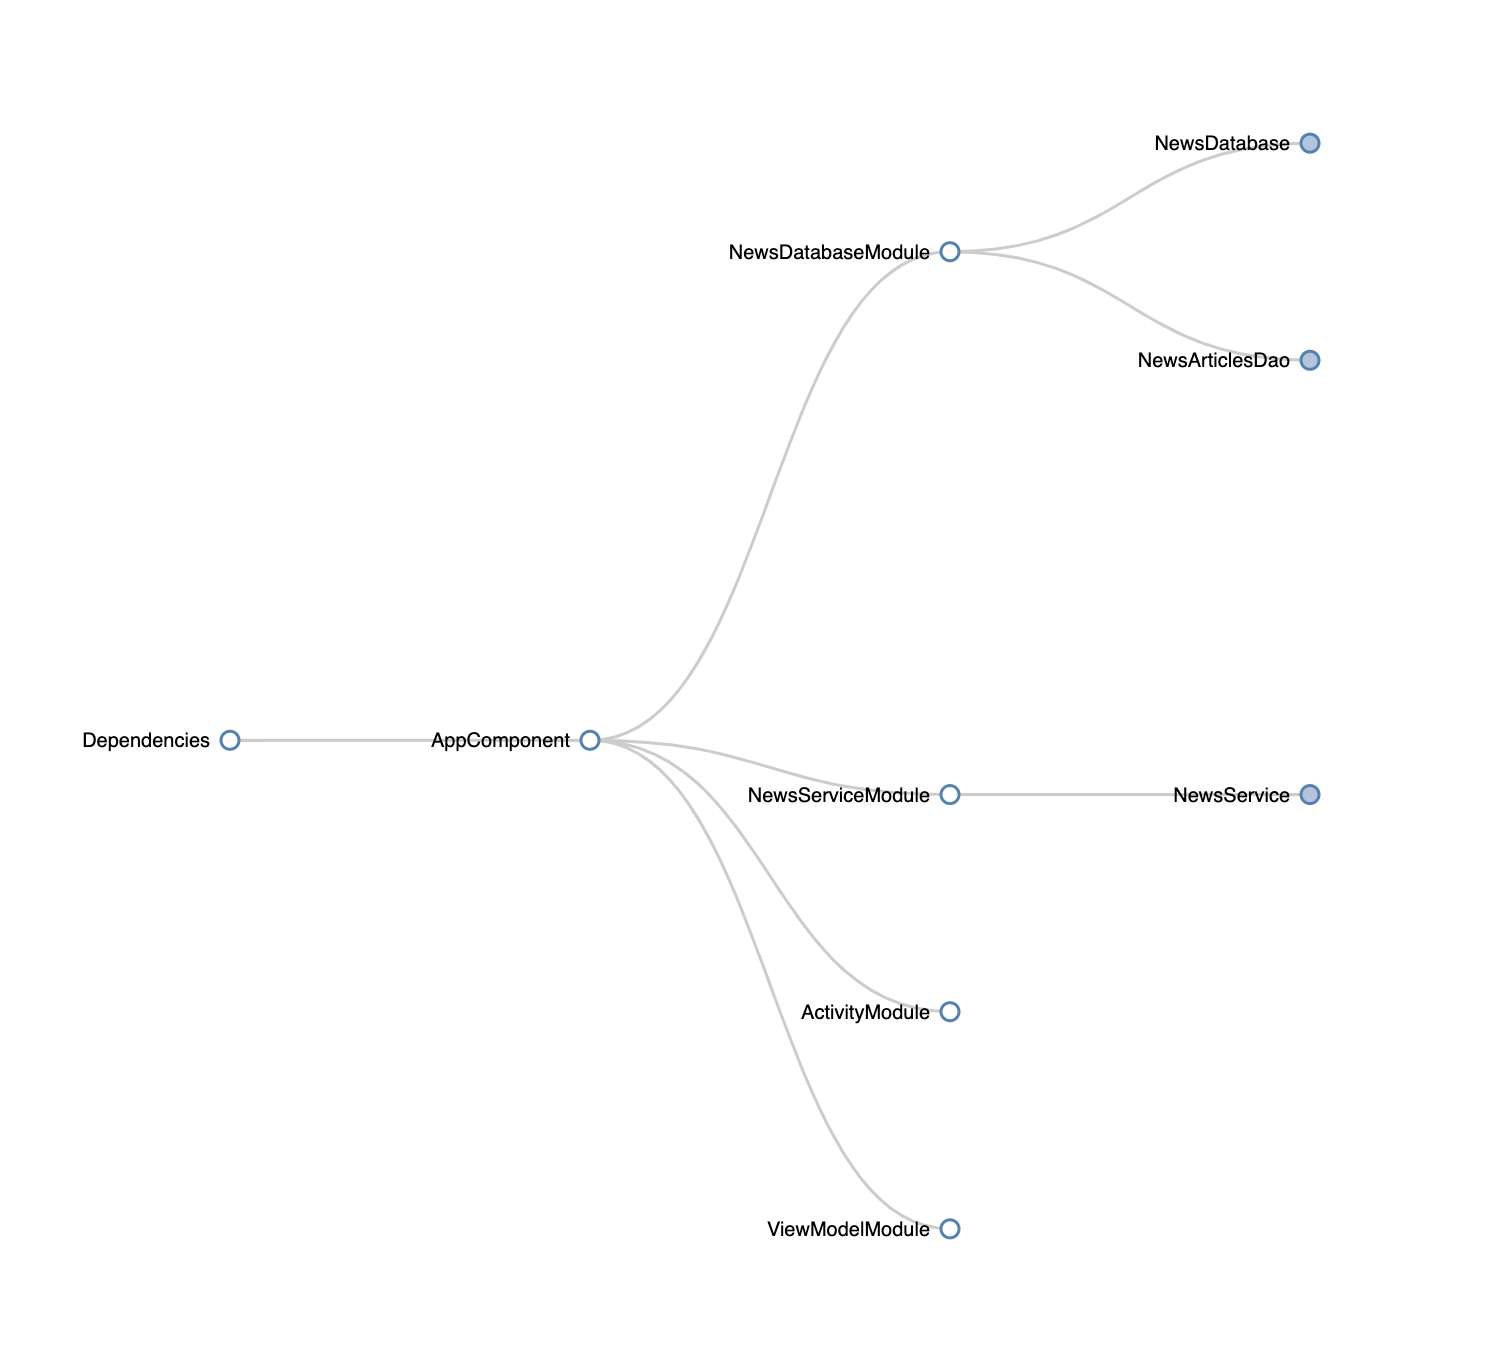 News App Dependency Graph